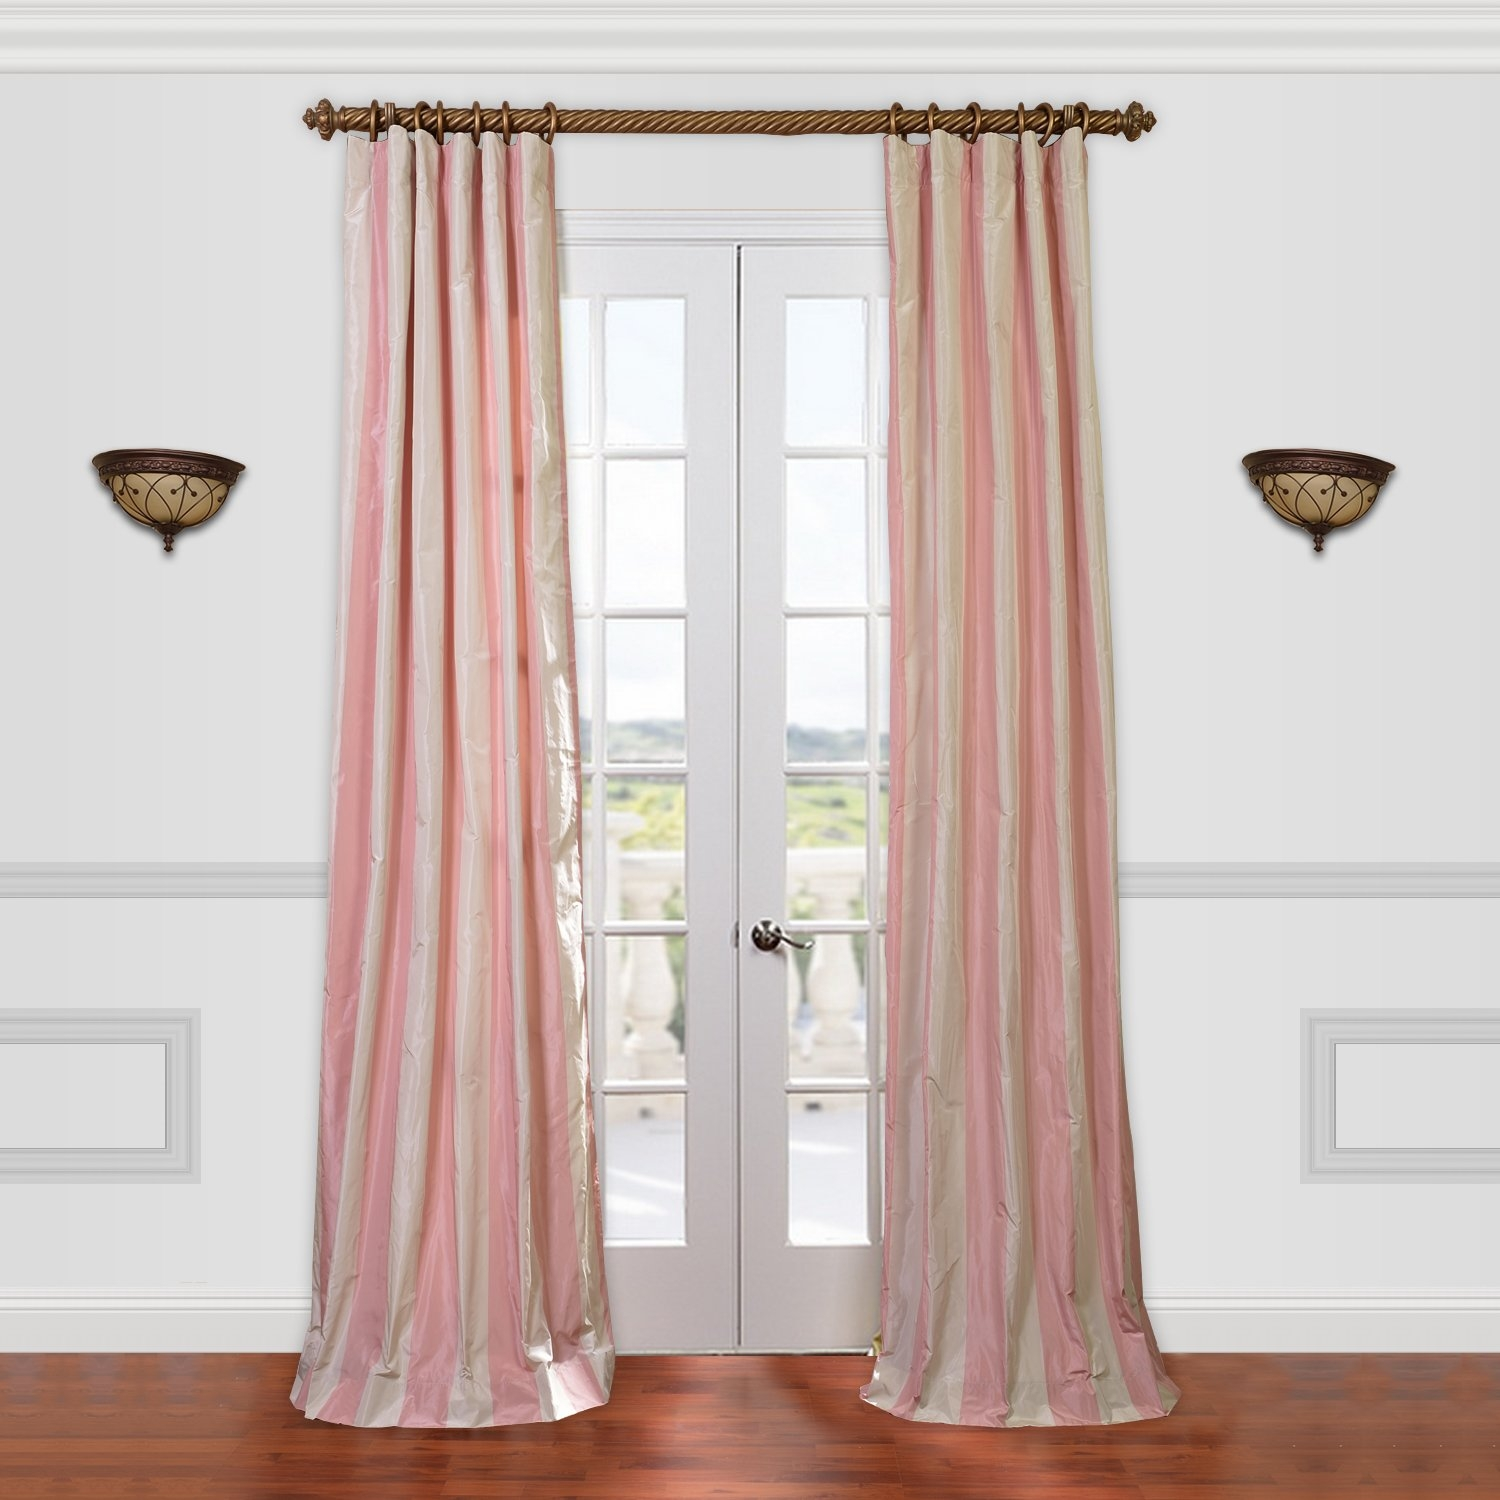 Pinch Pleated Drapes Curtains Wayfair In Natural Fiber Curtains (Image 11 of 15)